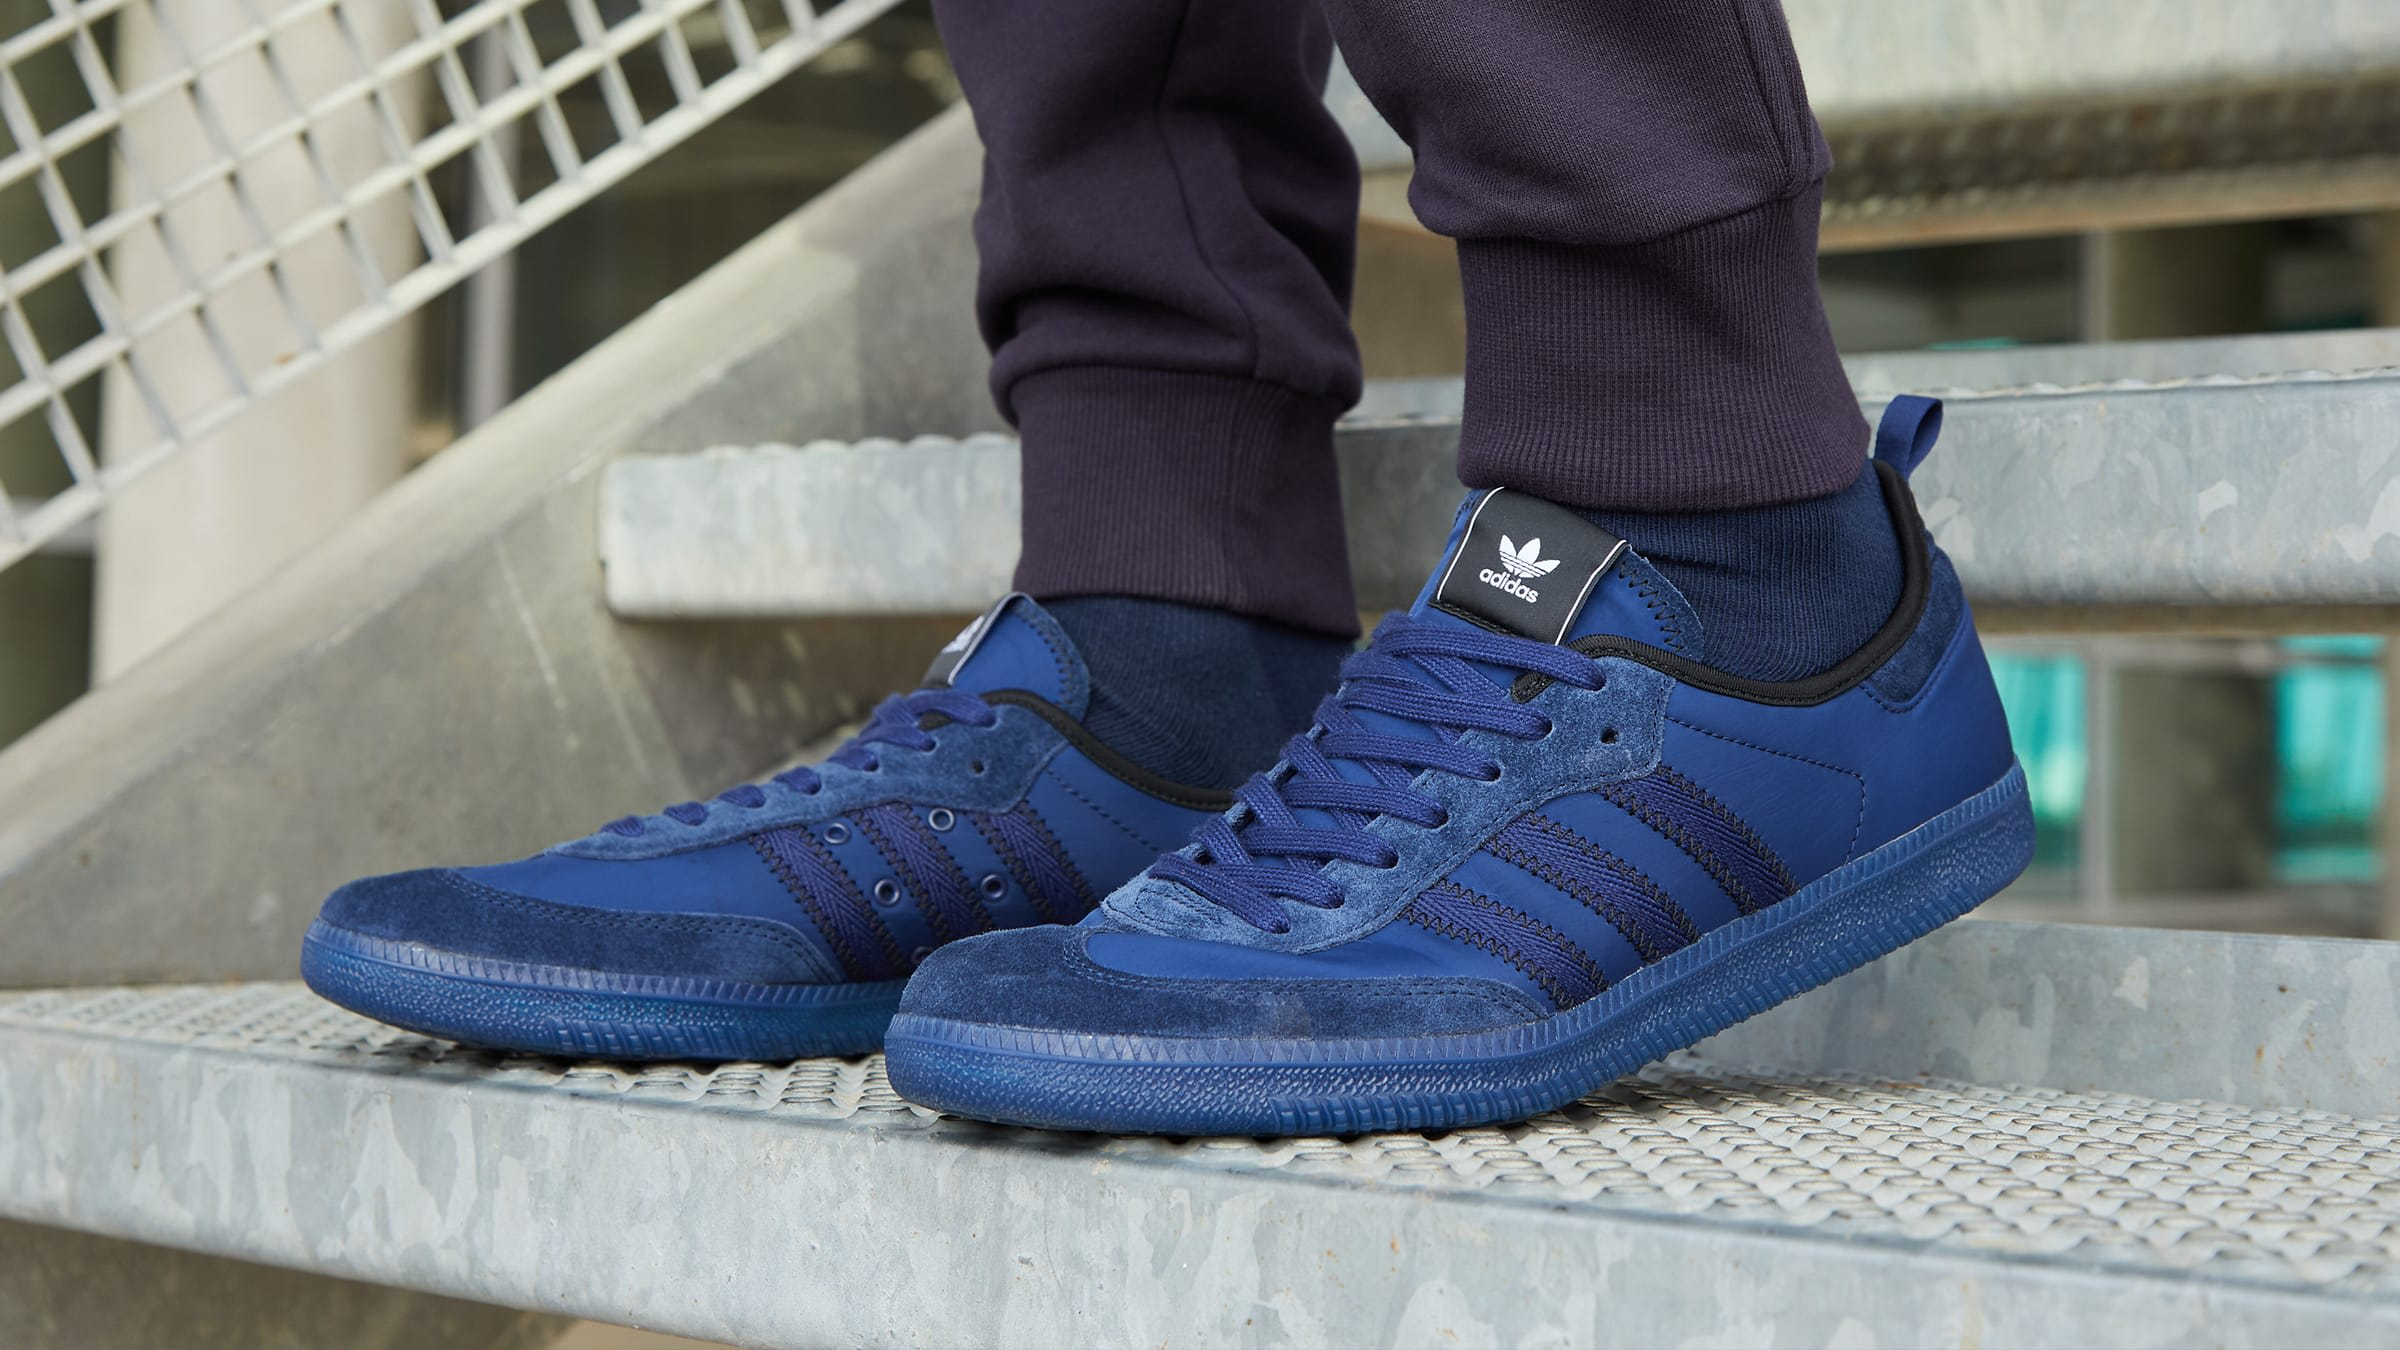 wholesale dealer ef8f6 56291 END. Features   adidas Originals by C.P. Company AW18 ...